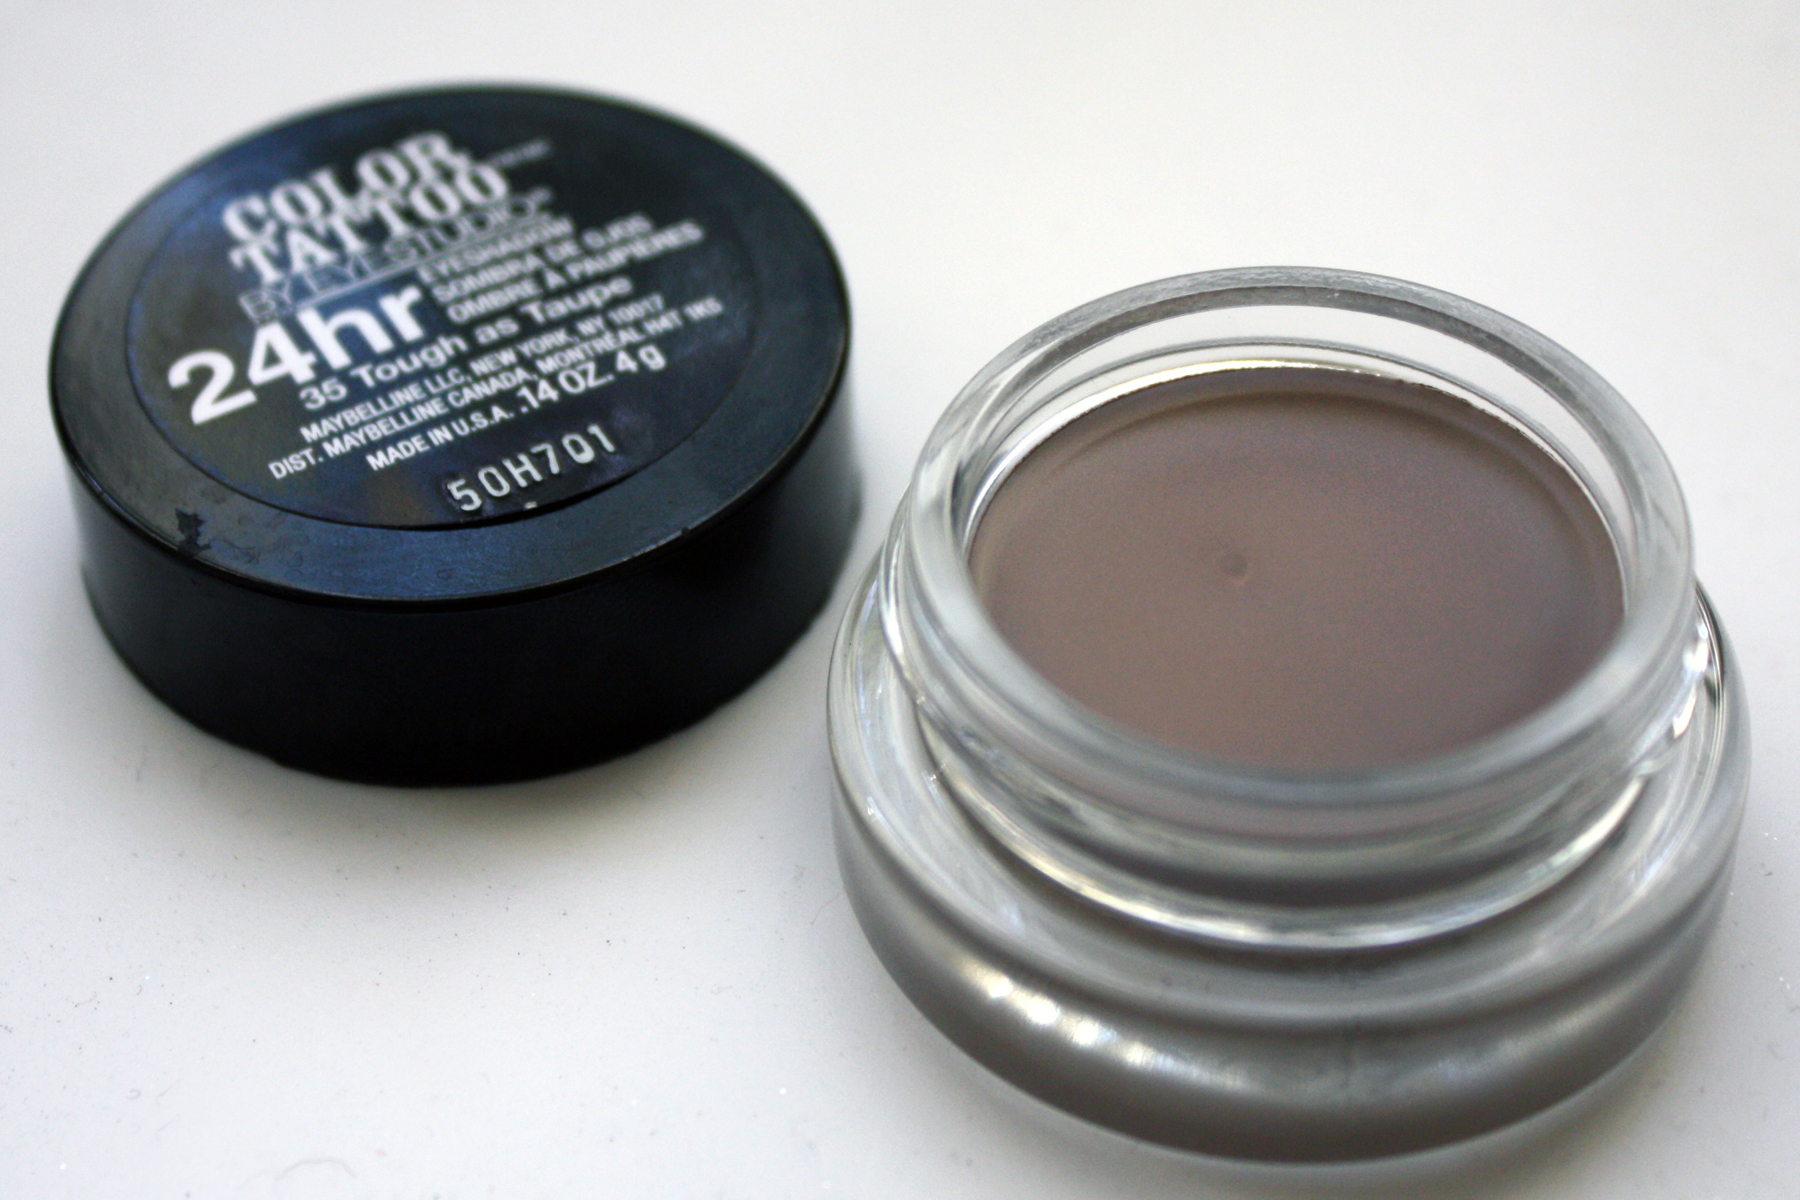 Tough as taupe for Color tattoo maybelline